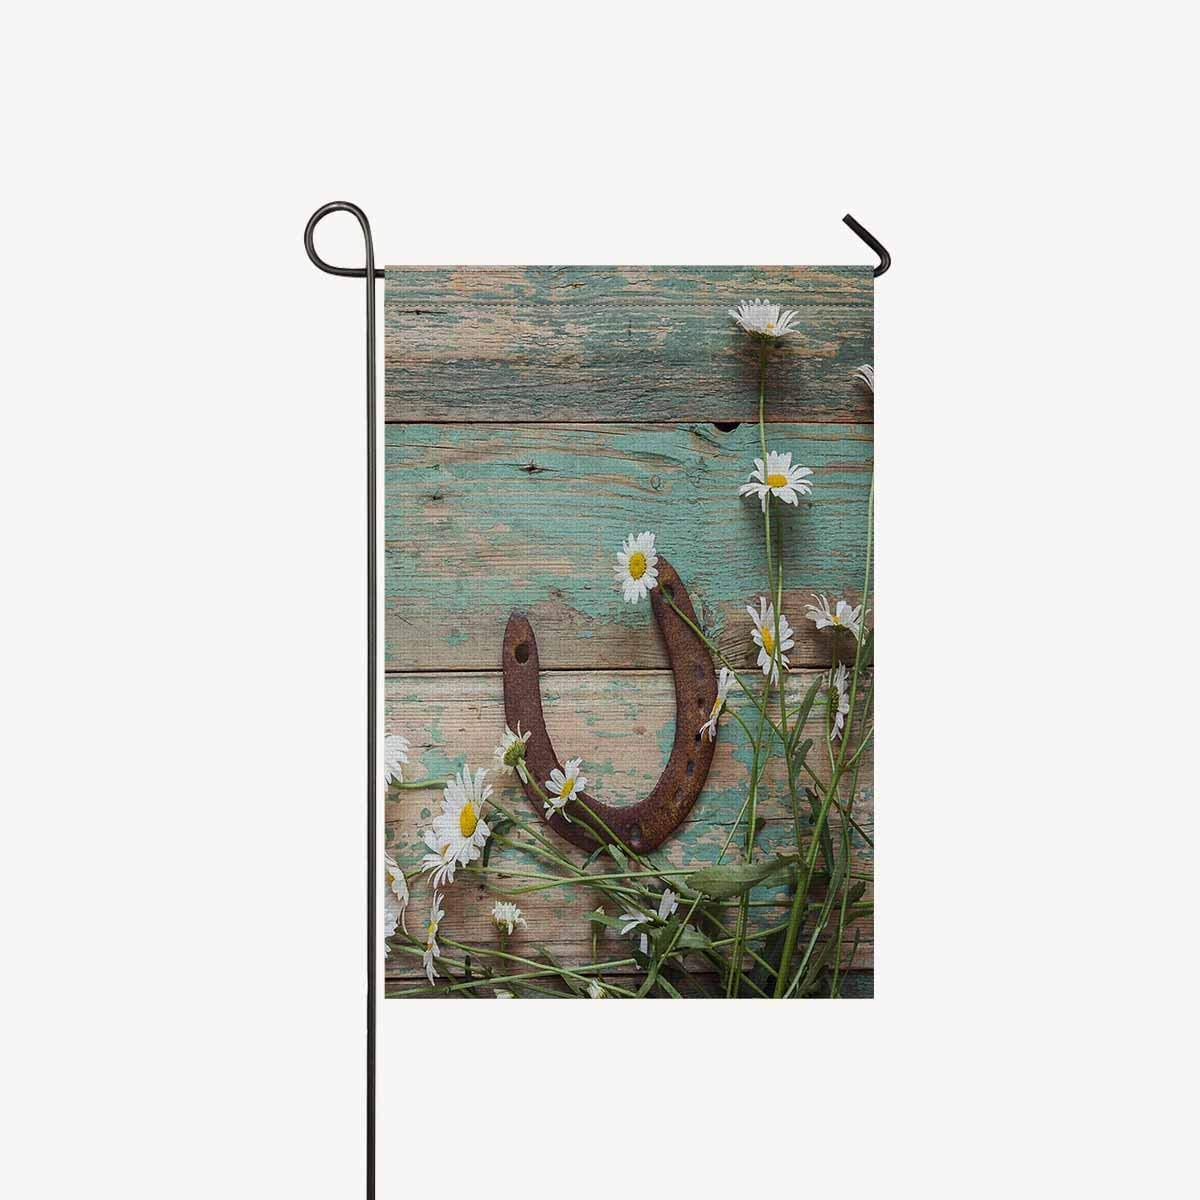 """TAOGAN Rusty Horseshoe and Daisies on Rustic Old Barn Wood Double-Sided Garden Flag Home House Banner Decorative Flags Best for Party Yard Home Outdoor Decor 12"""" x 18""""(Without Flagpole)"""